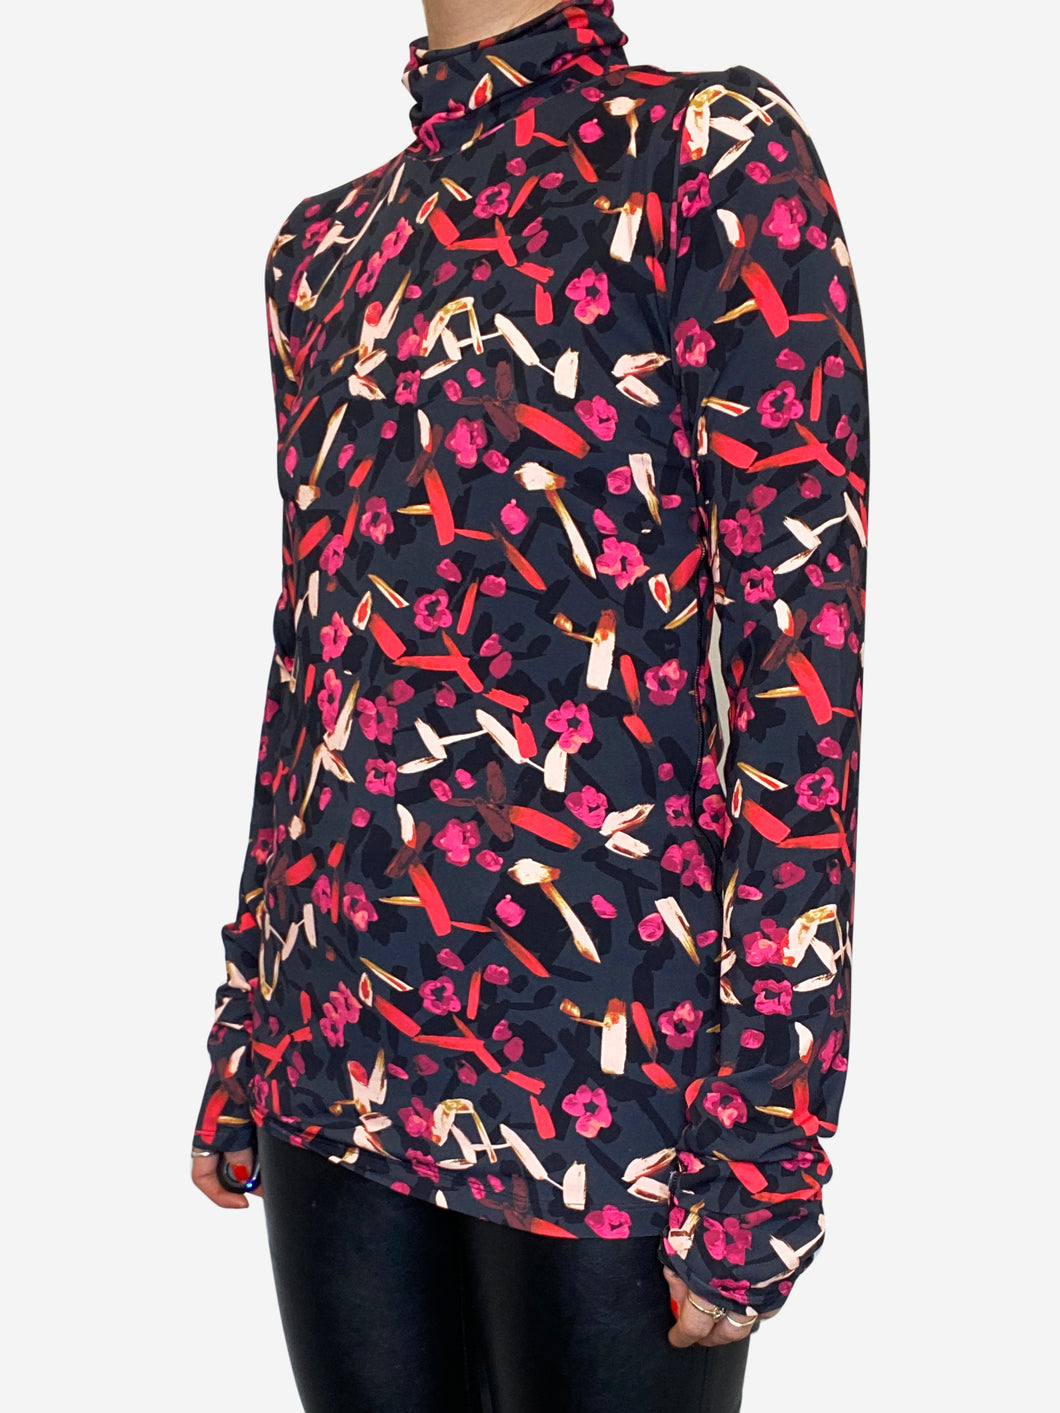 Black & Pink long sleeve turtle neck technofabric top - size M